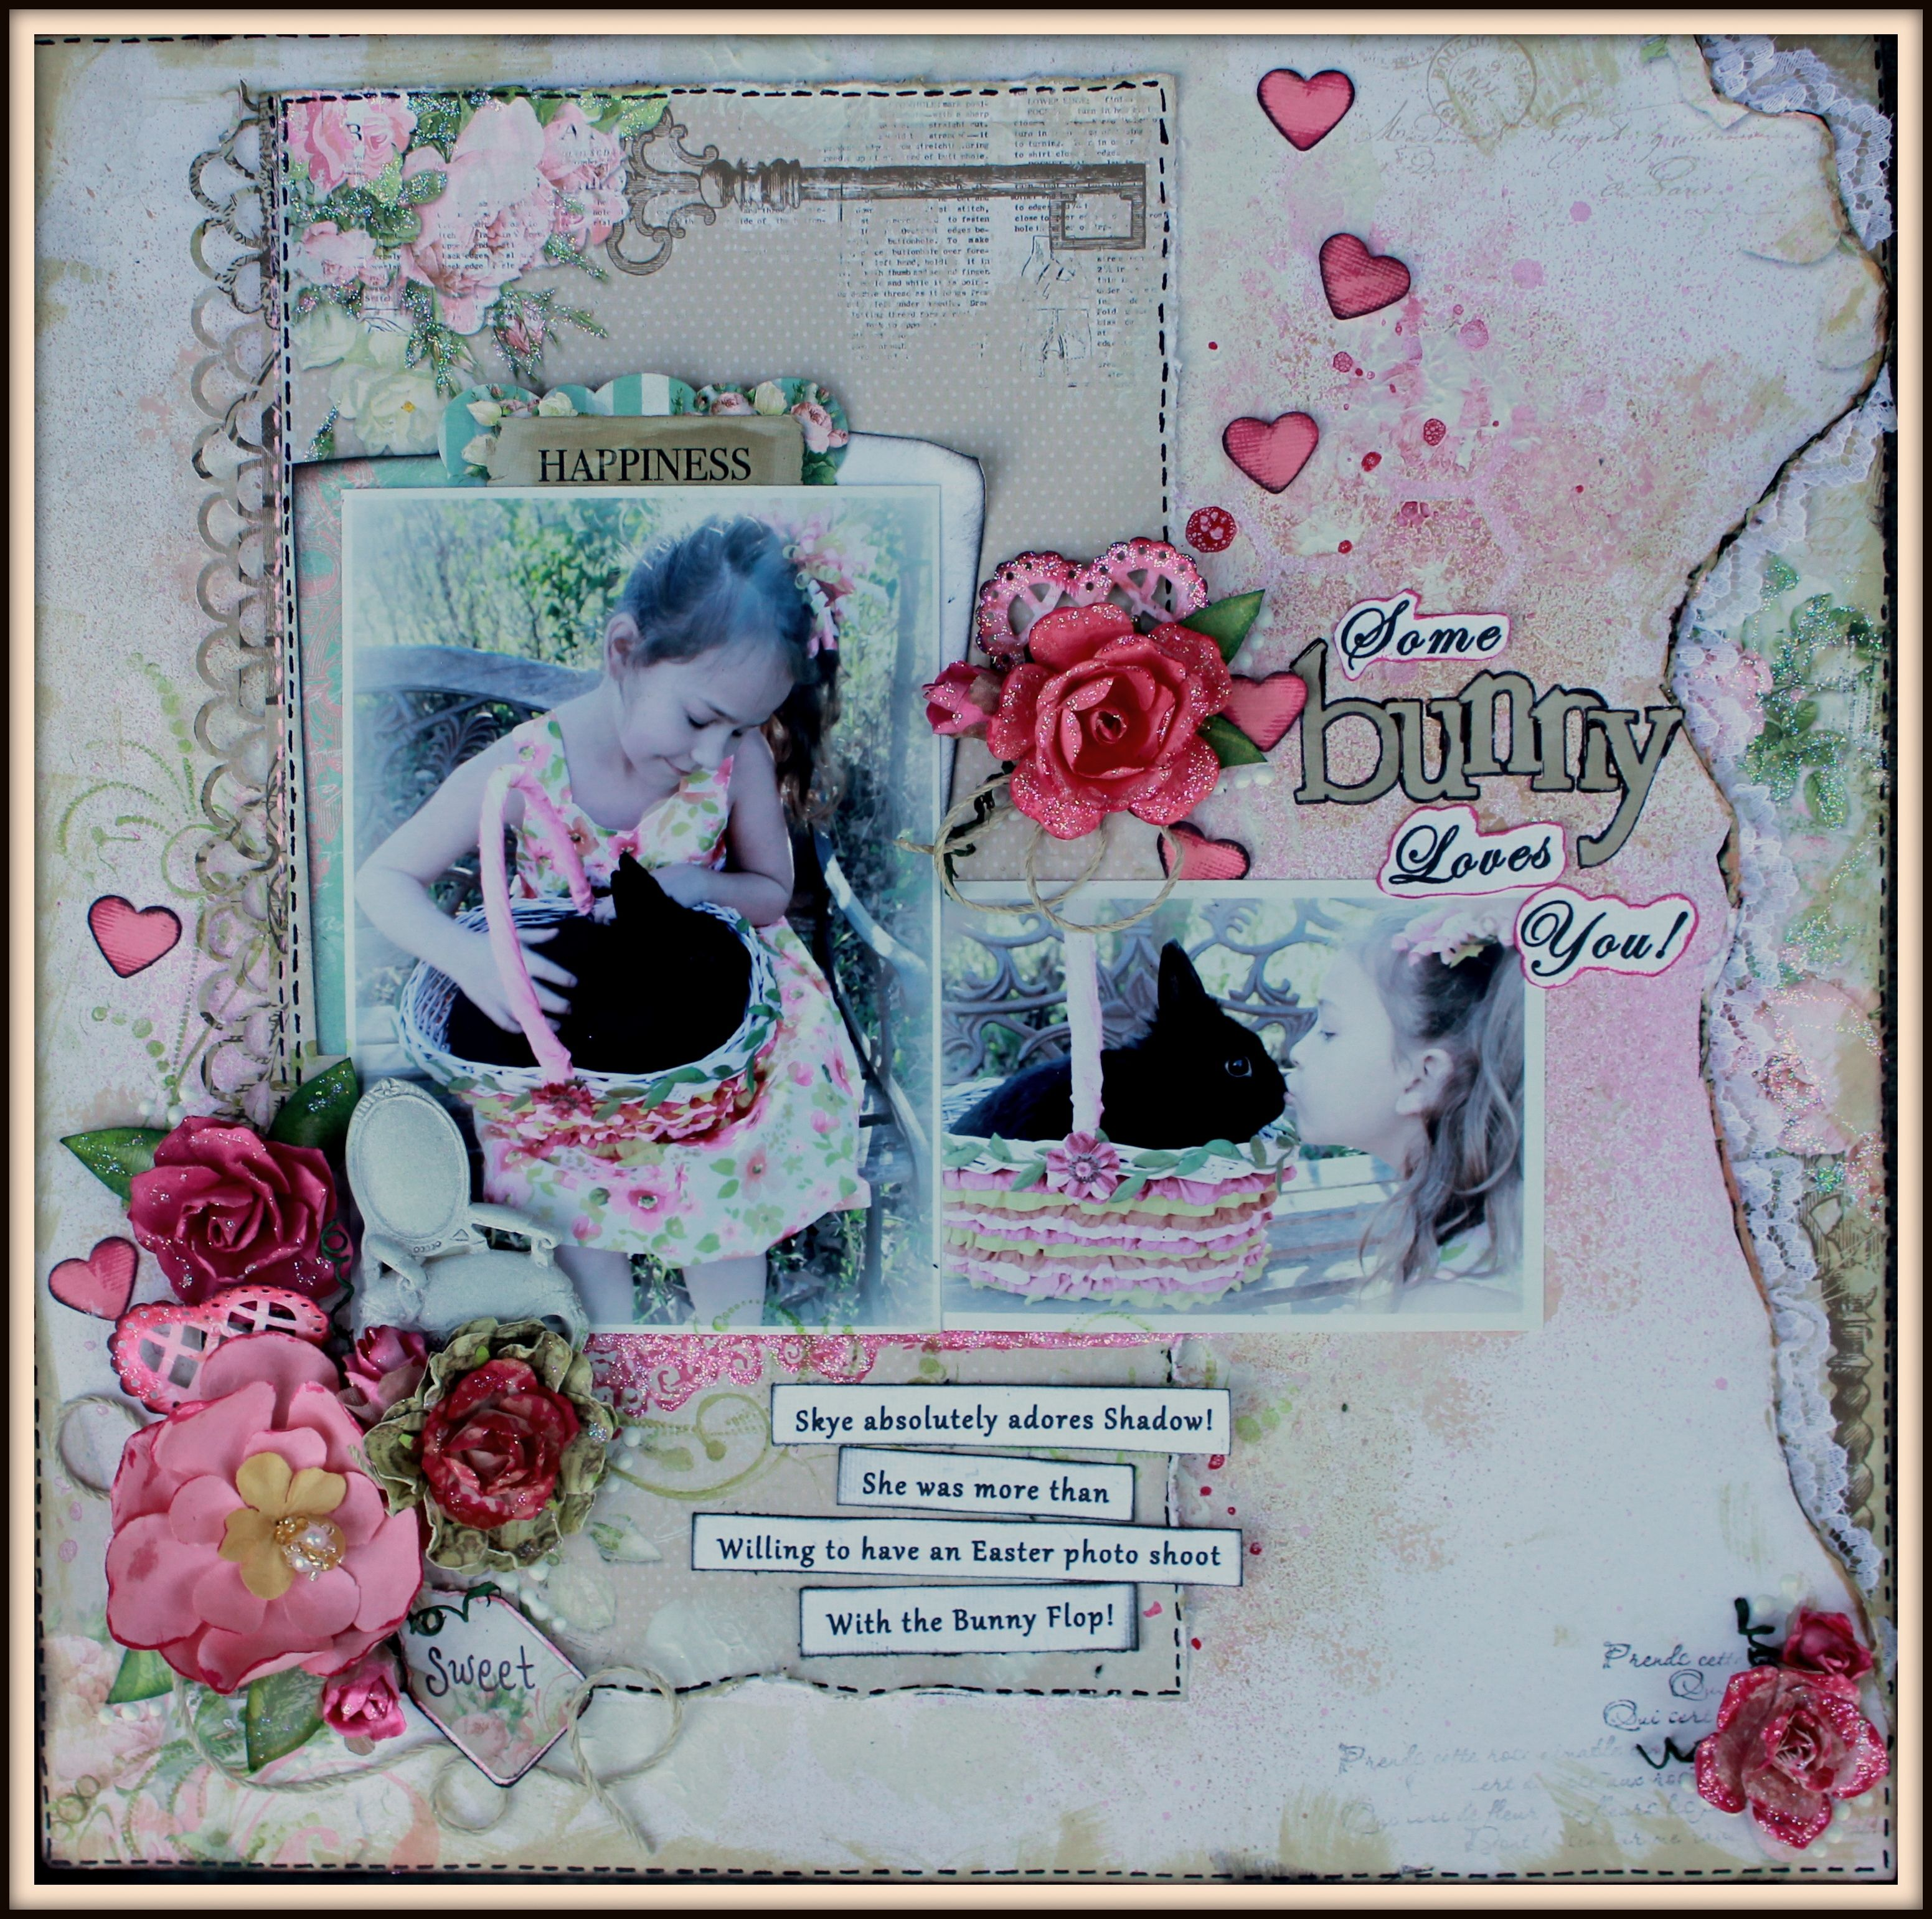 Some+Bunny+Loes+You! - http://mycreativescrapbook.com for May 2016 with the gorgeous Limited Edition kit.